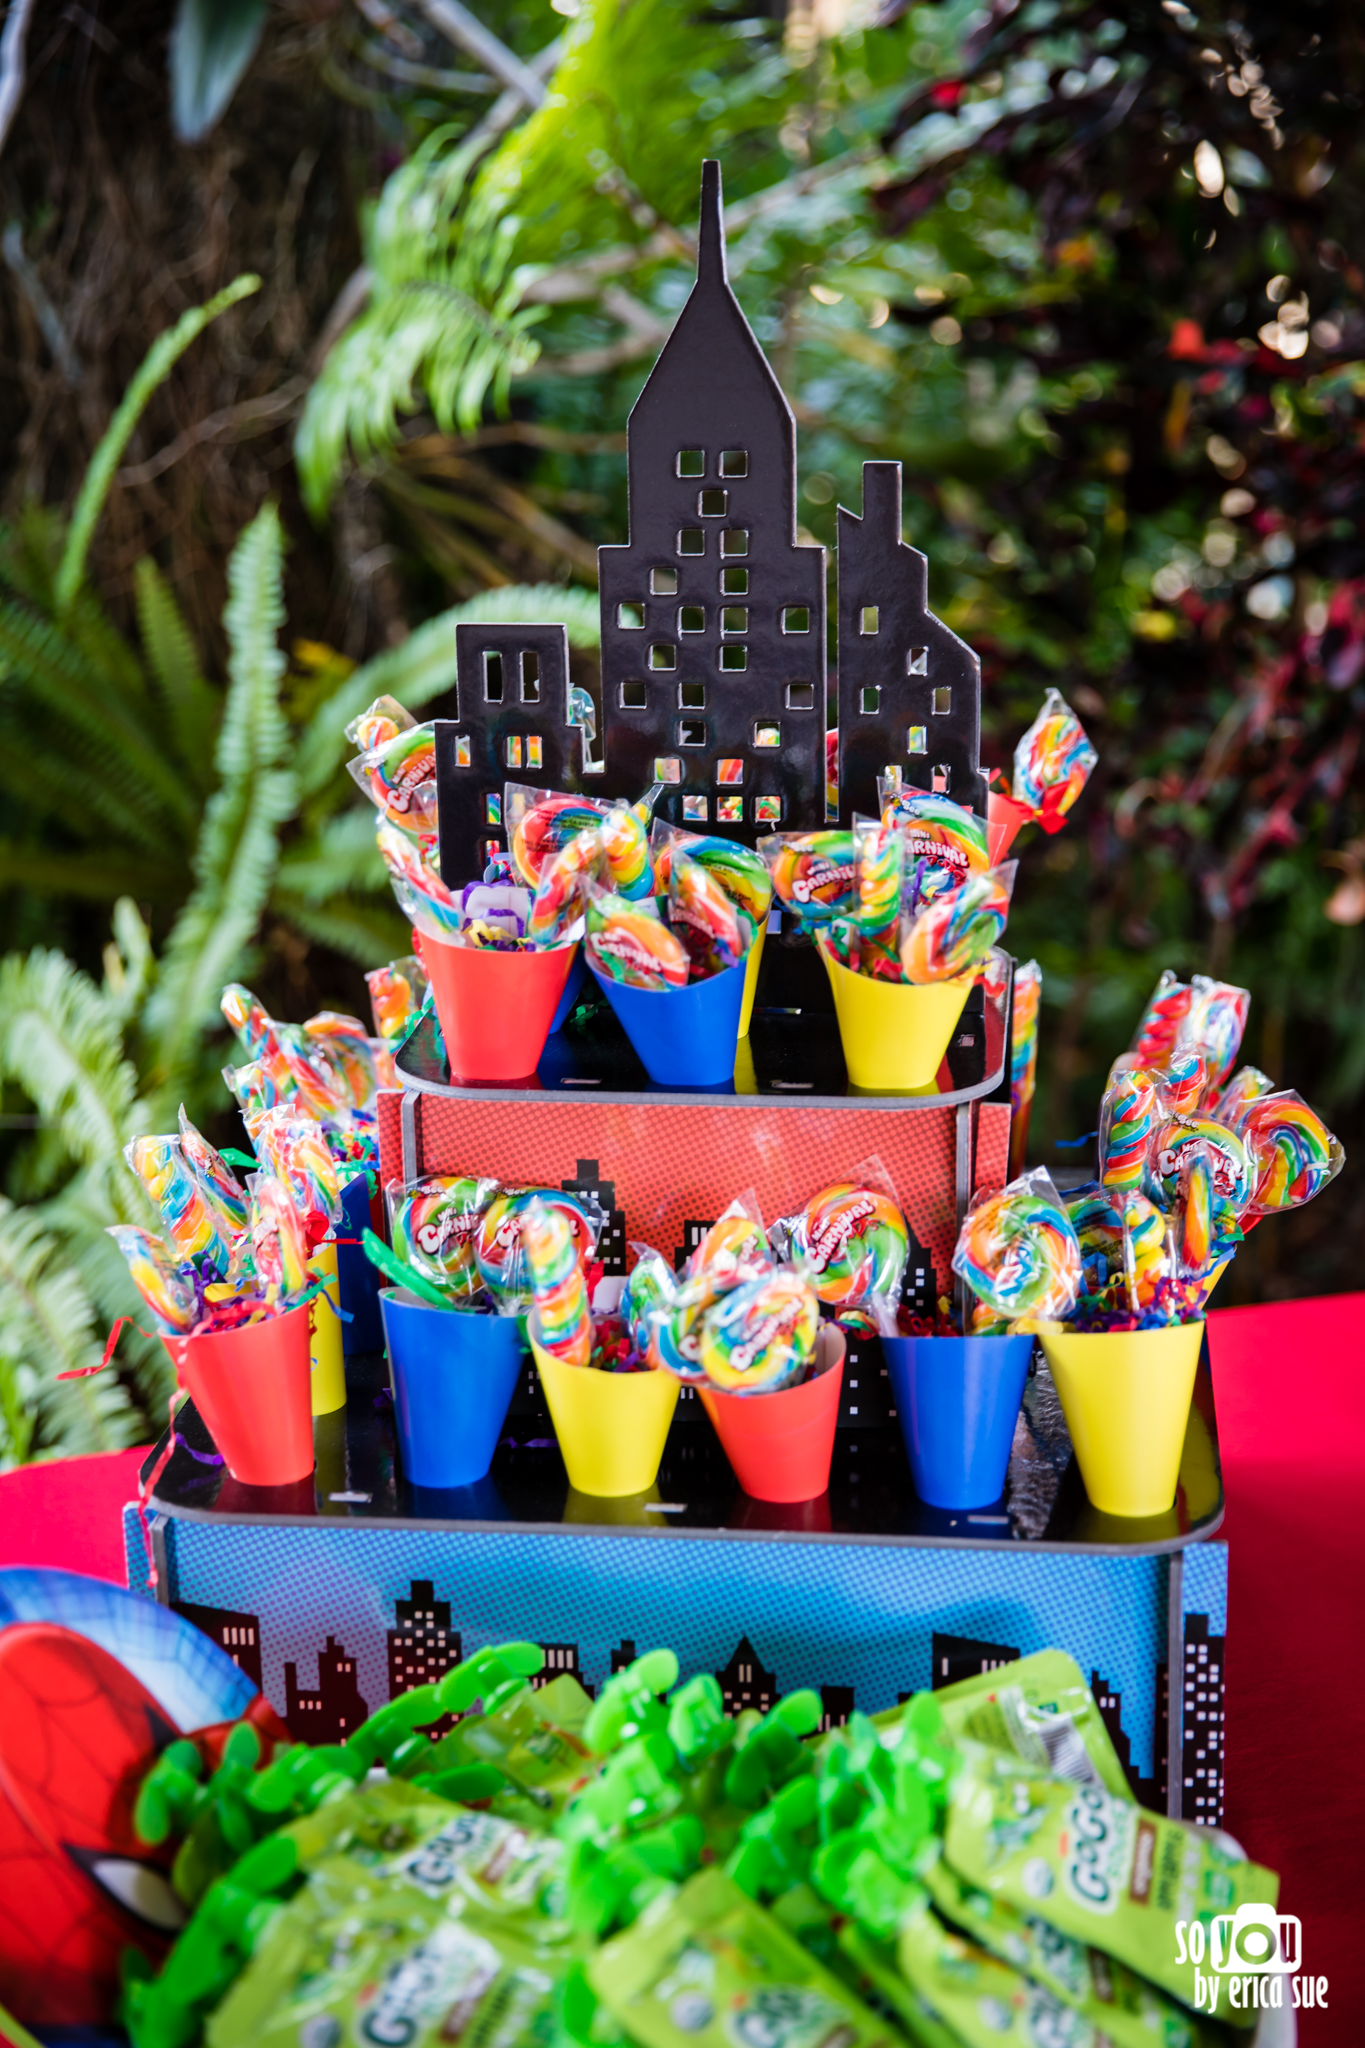 so-you-by-erica-sue-miami-birthday-party-event-photographer-8058.jpg